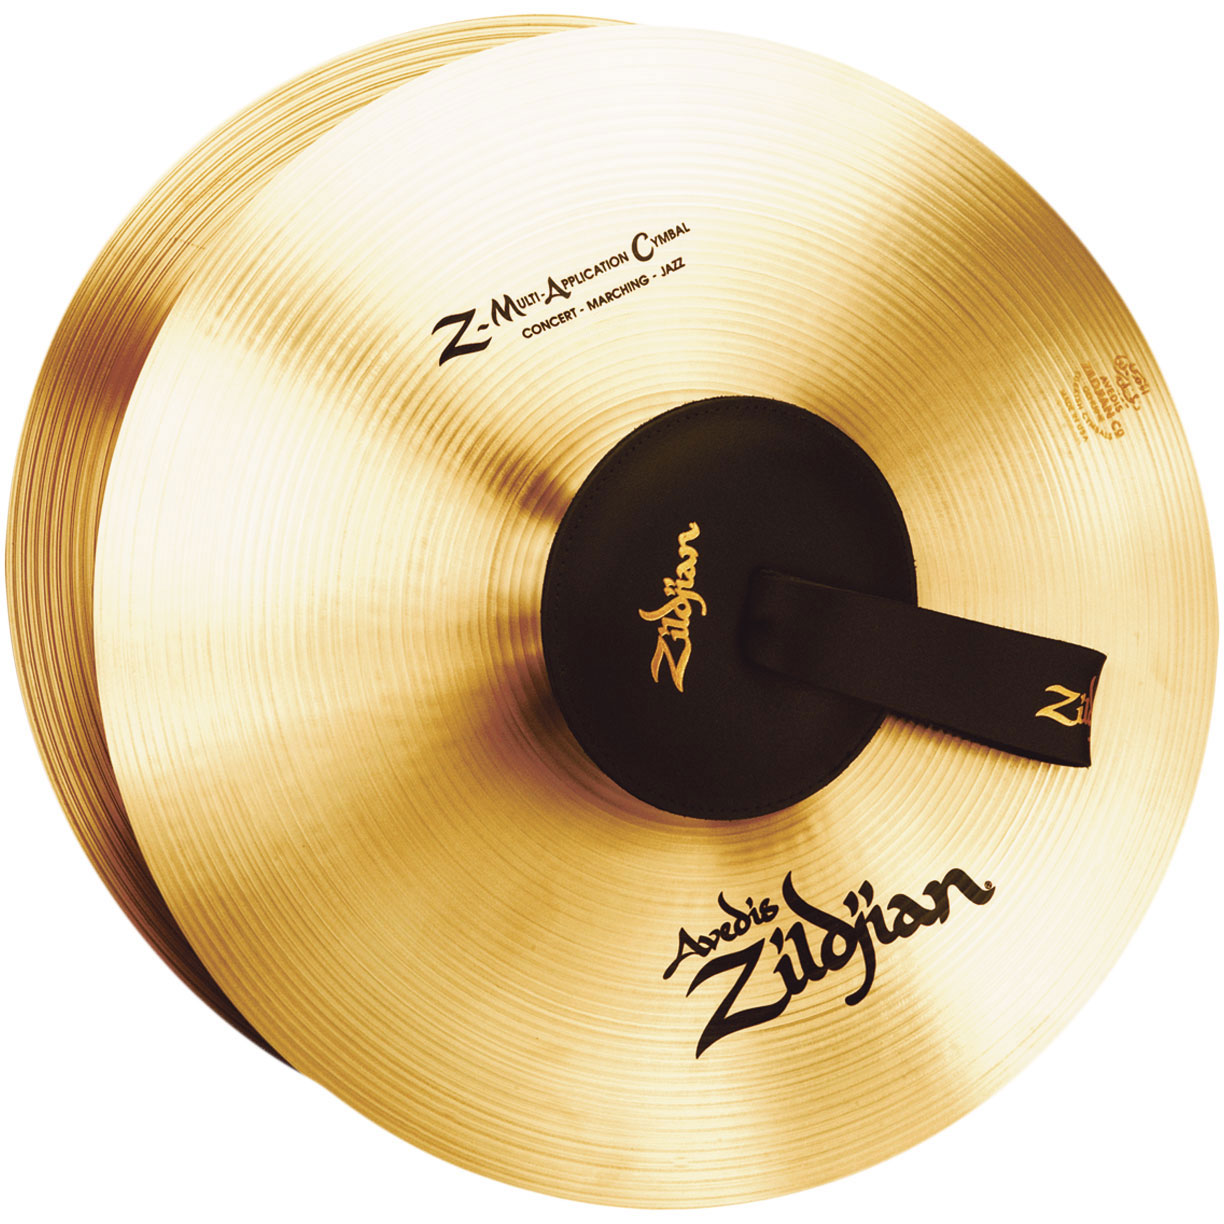 "Zildjian 16"" Z-Mac Crash Cymbal Pair"